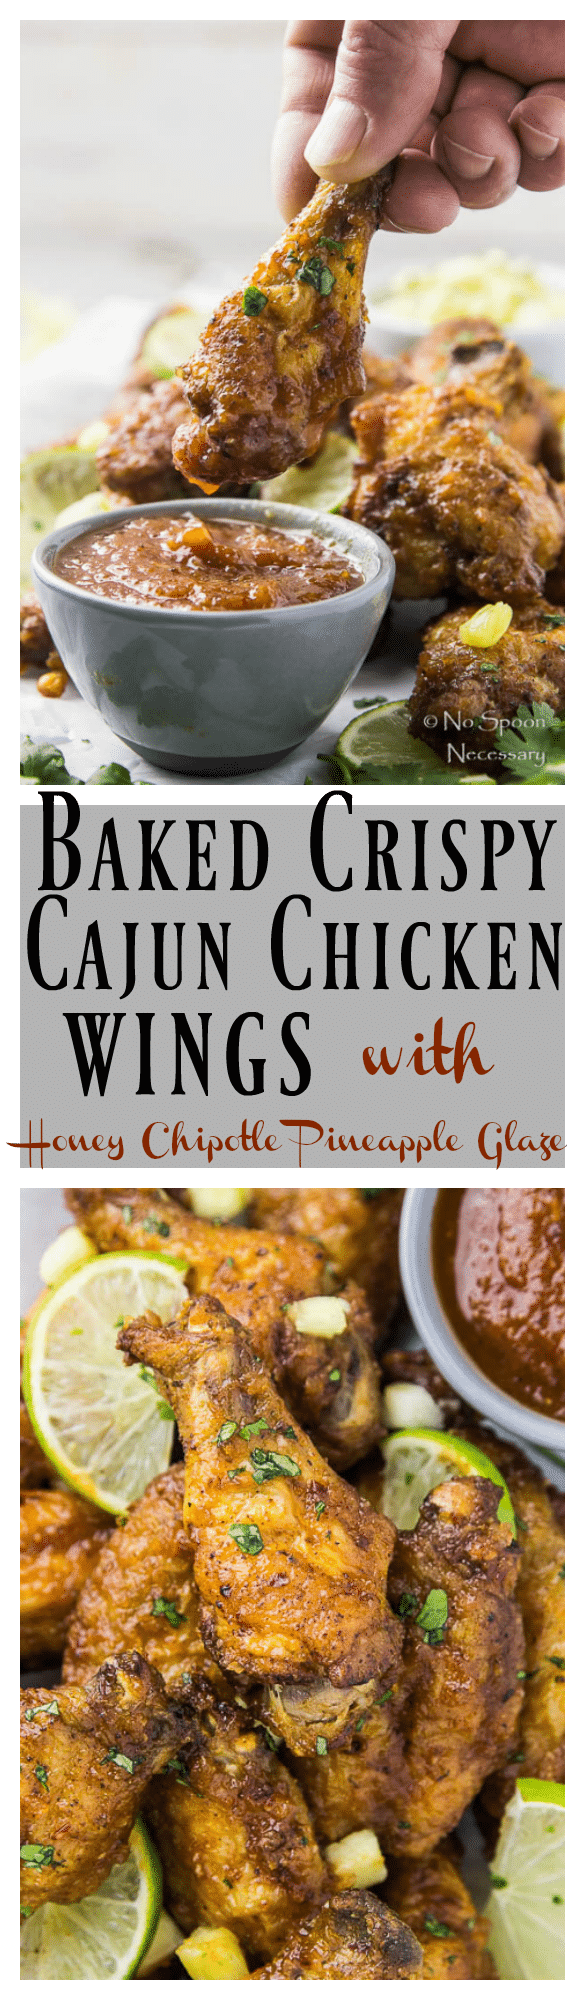 Baked Crispy Cajun Chicken Wings with Honey Chipotle Pineapple Glaze-long pin3